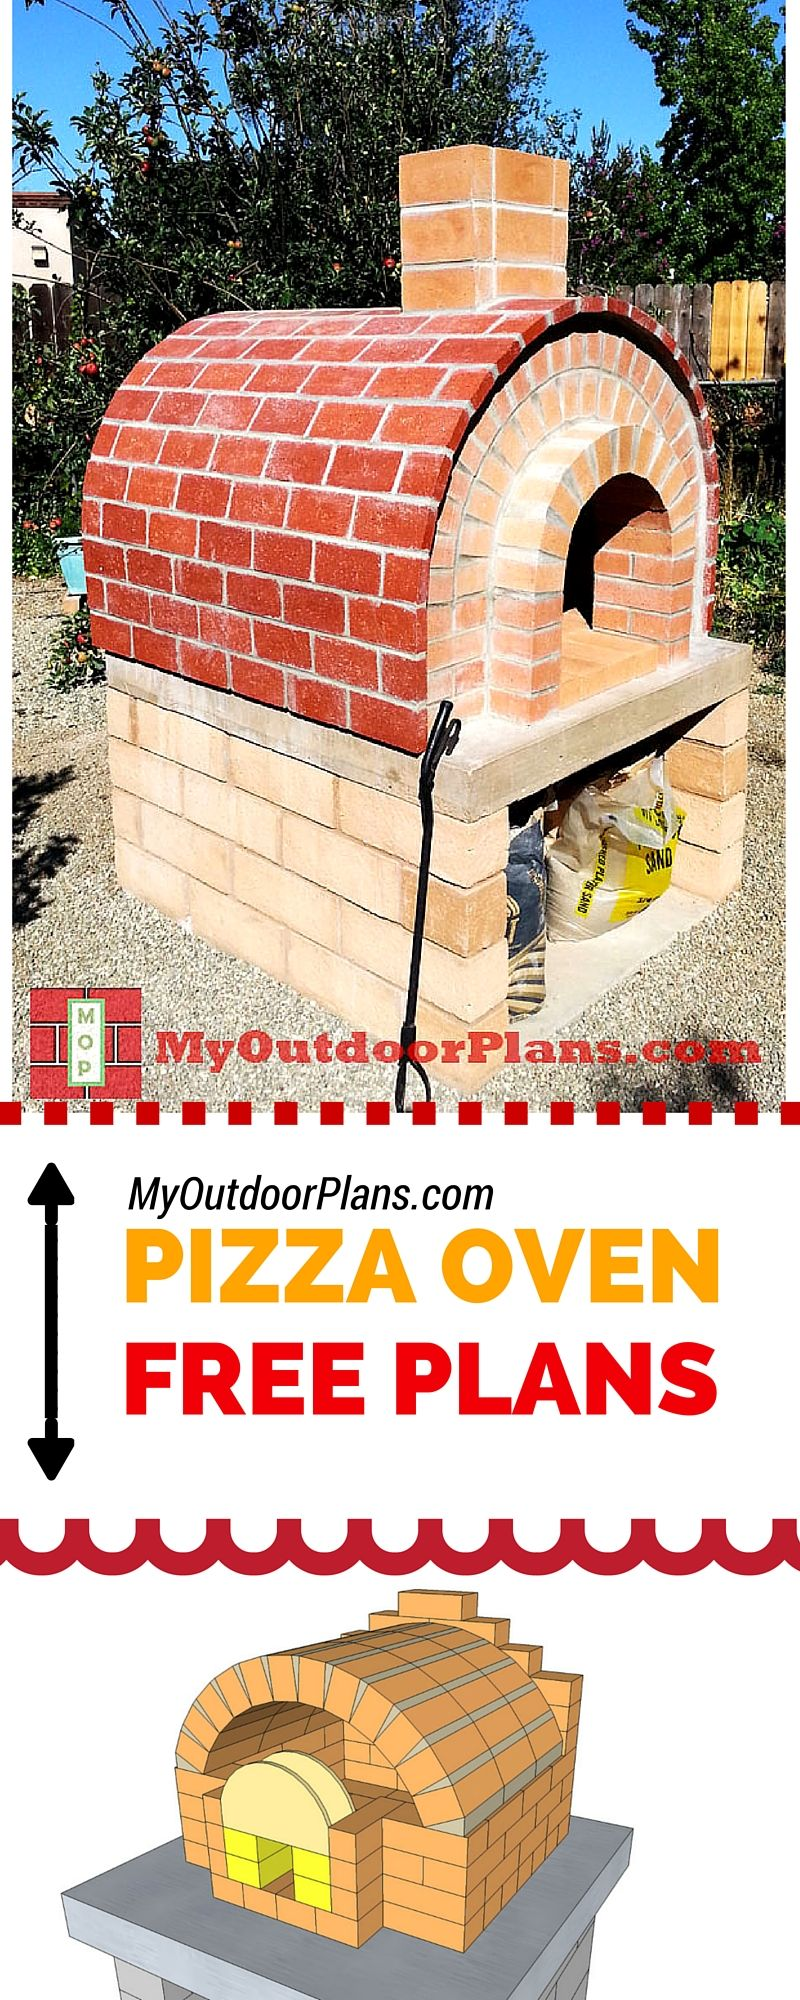 Pizza oven plans easy to follow instructions and diagrams for you